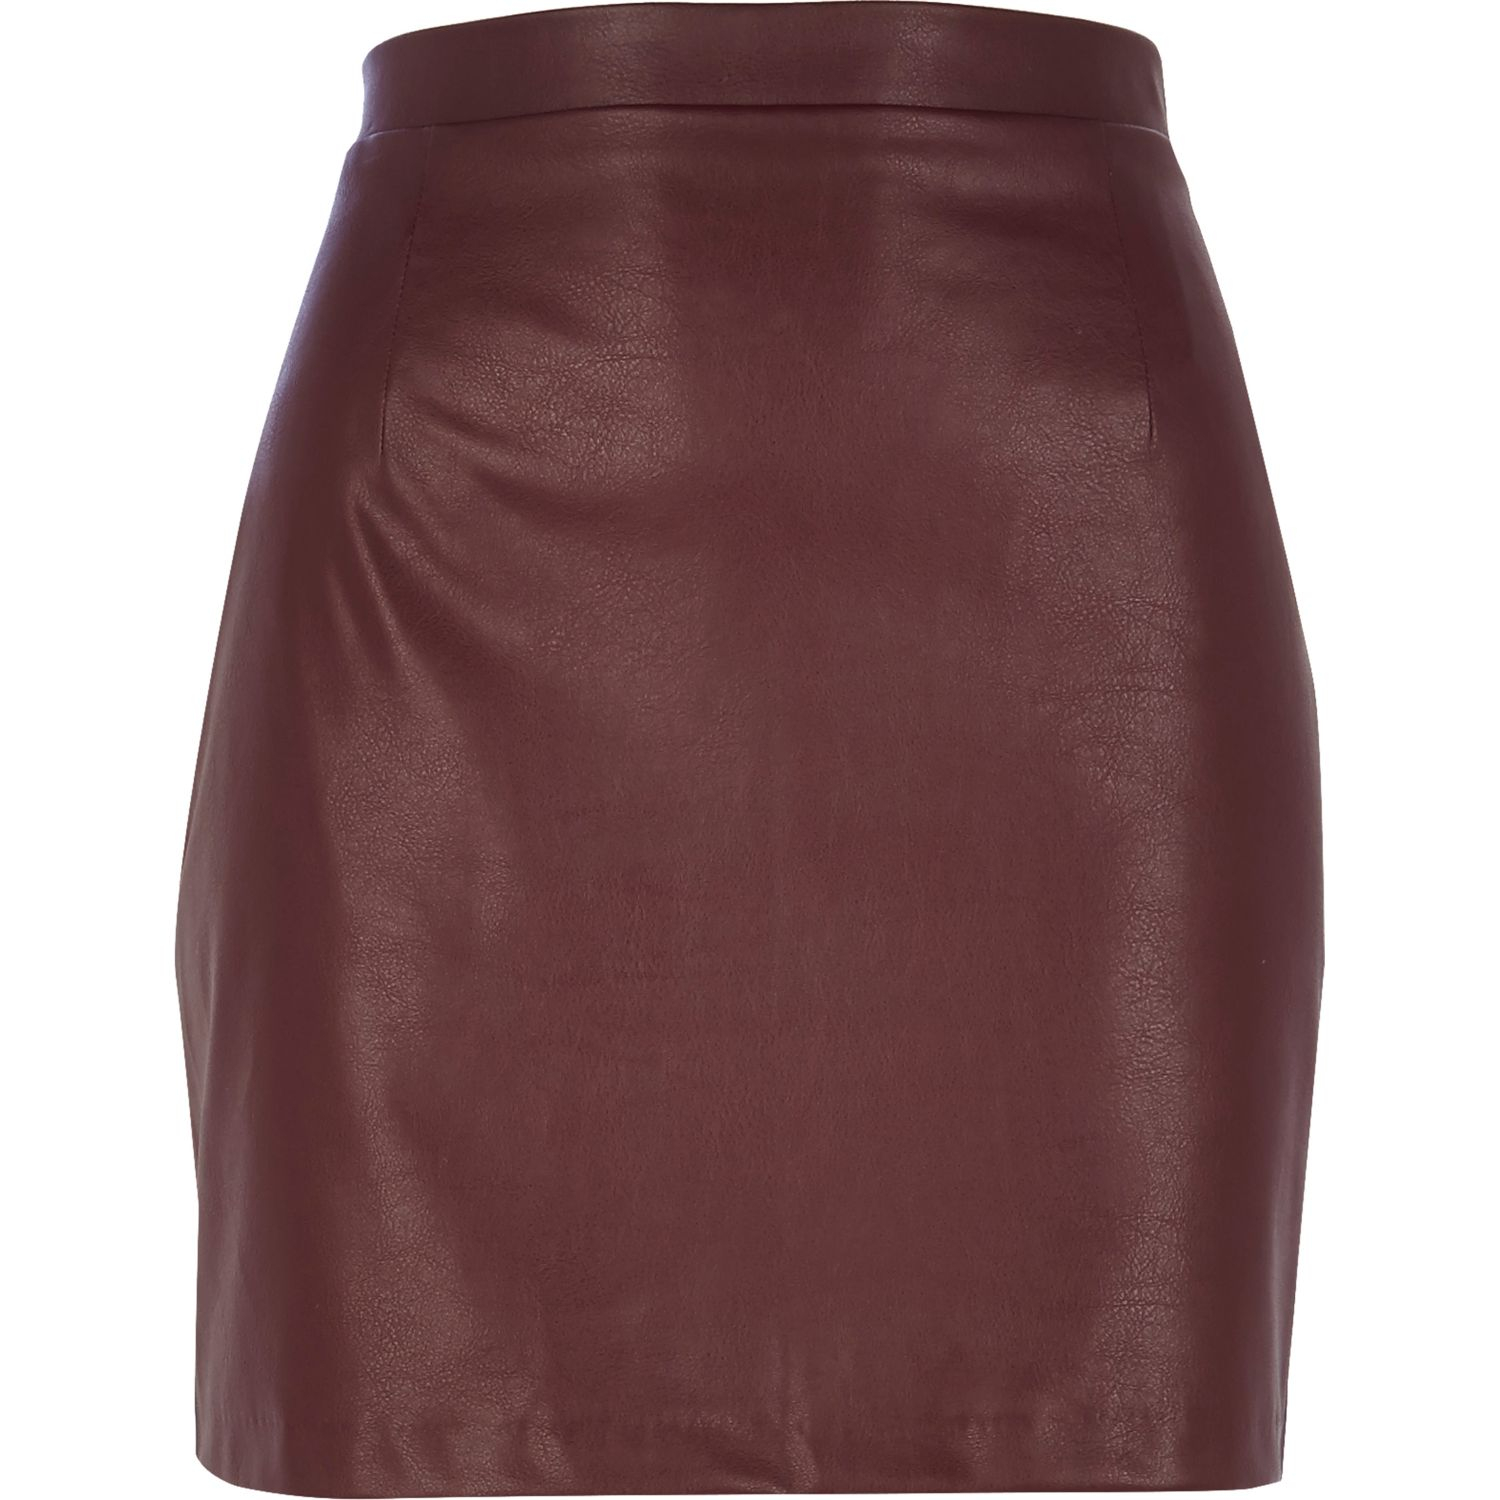 Discover women's leather skirts with ASOS. Shop for faux leather pencil, mini & suede skirts in a range of colours and styles at ASOS.